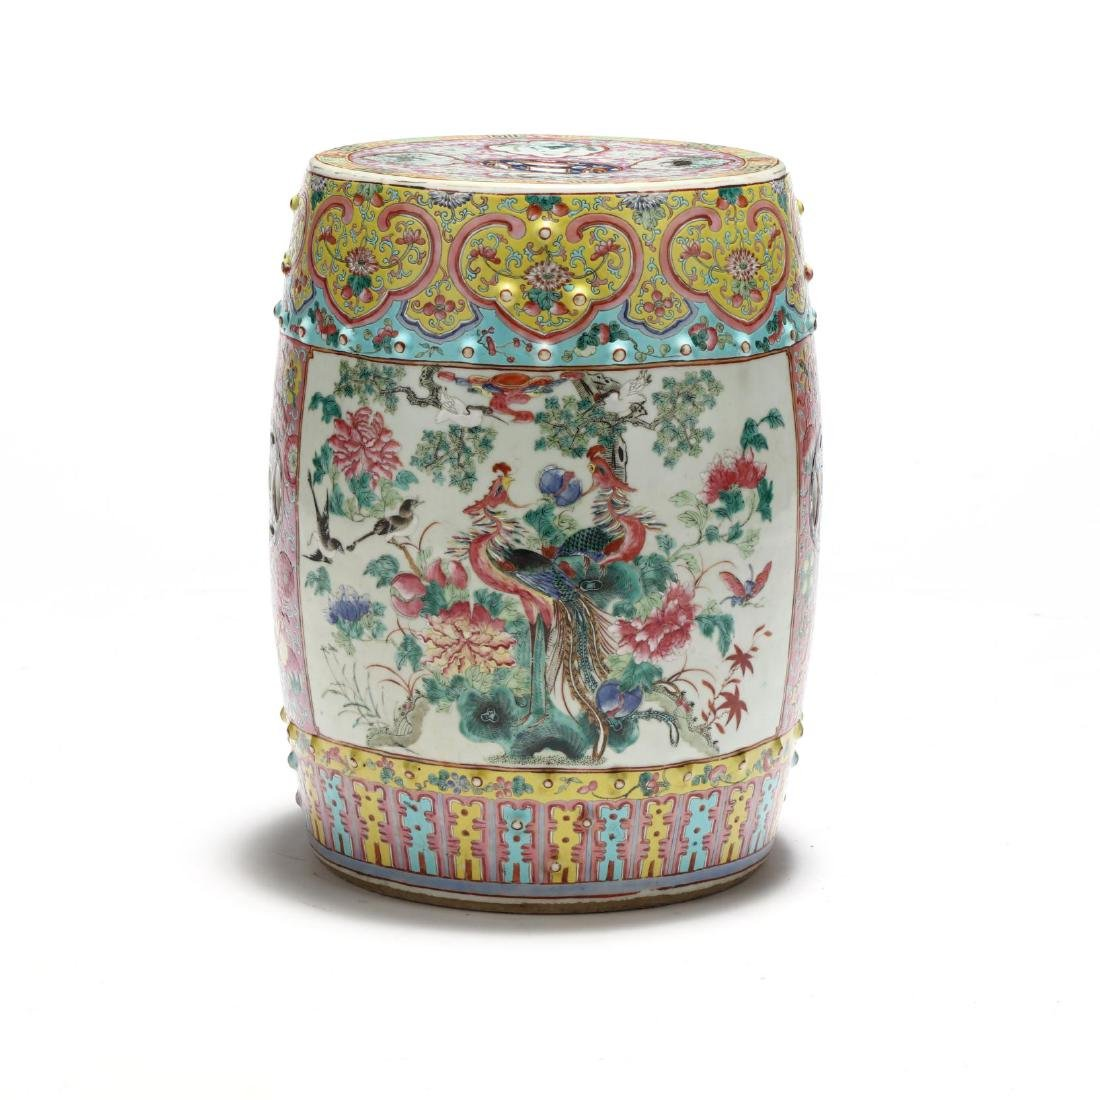 A Chinese Famille Rose Drum Garden Stool